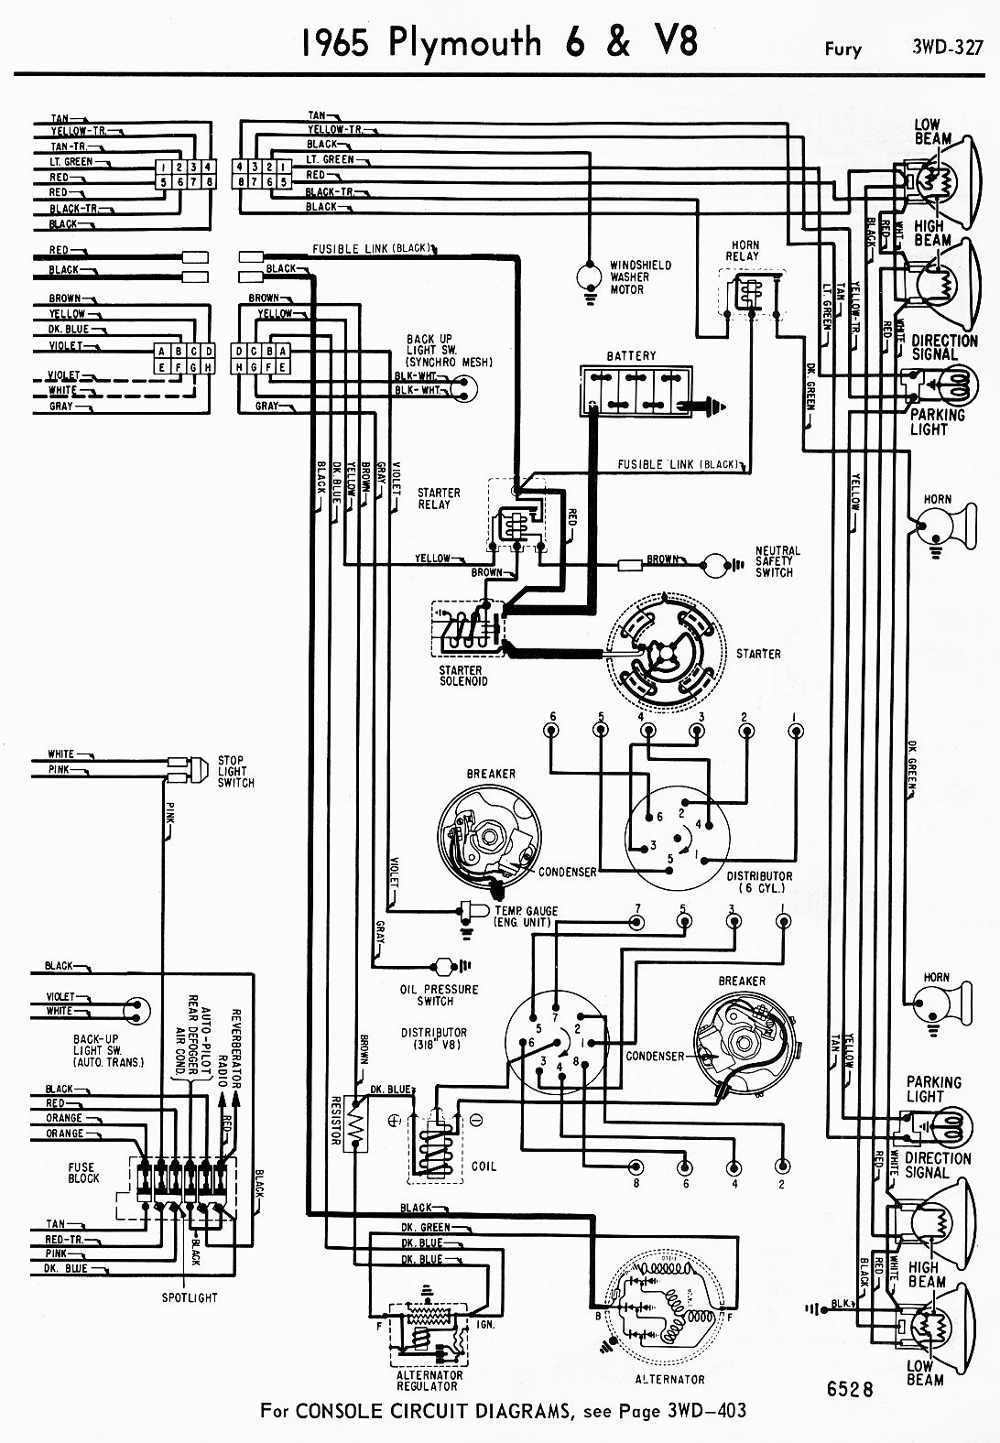 1975 Plymouth Duster Wiring Diagram Diagrams 1966 Porsche Engine Schematic 1971 Nova Door Parts 1967